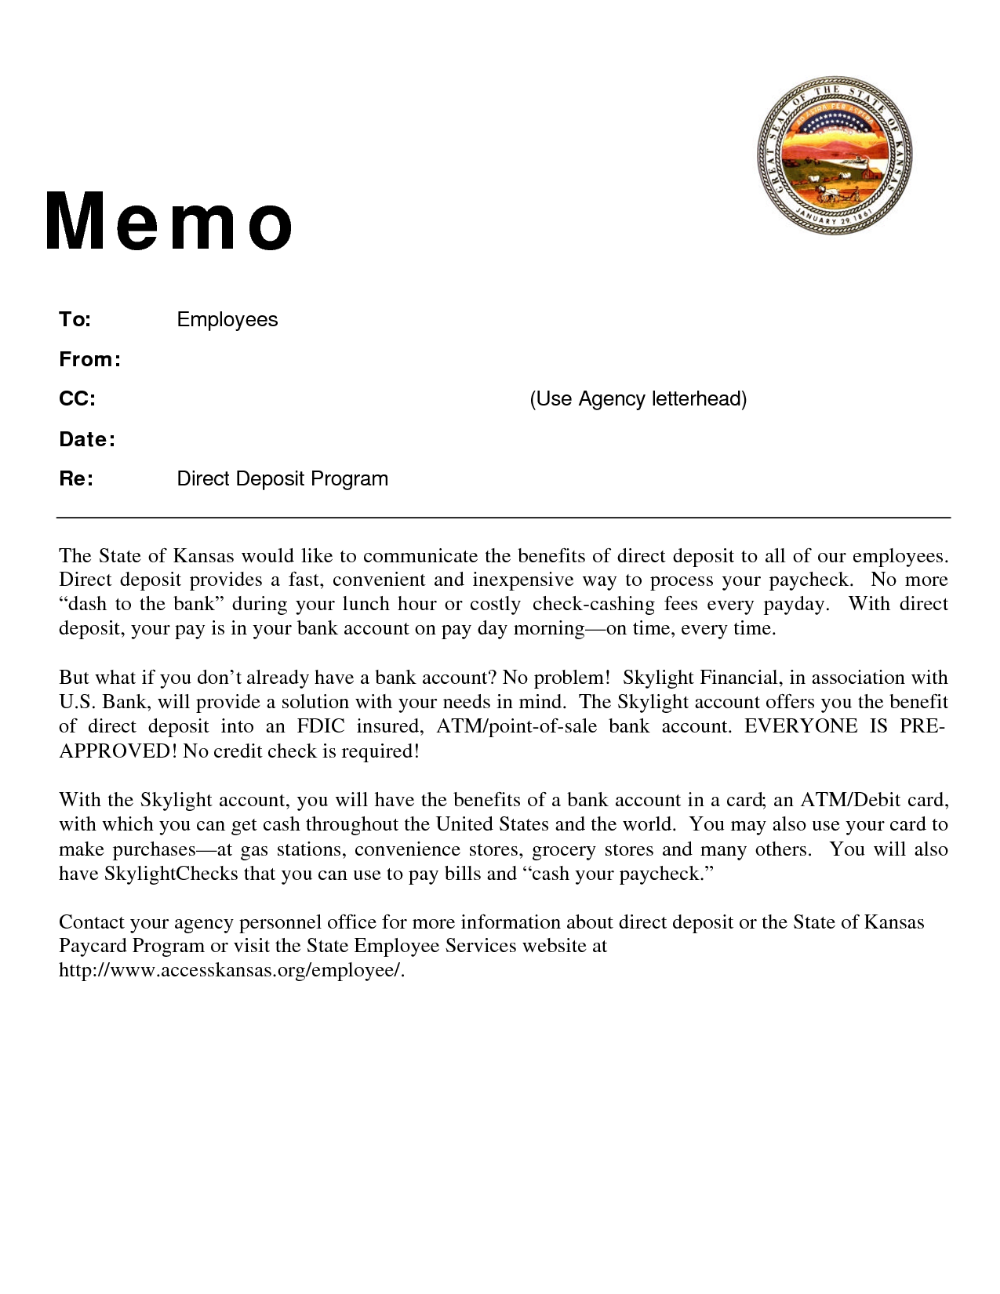 Memo Examples To Employees Pdf Memo Examples Reference Letter Business Memo